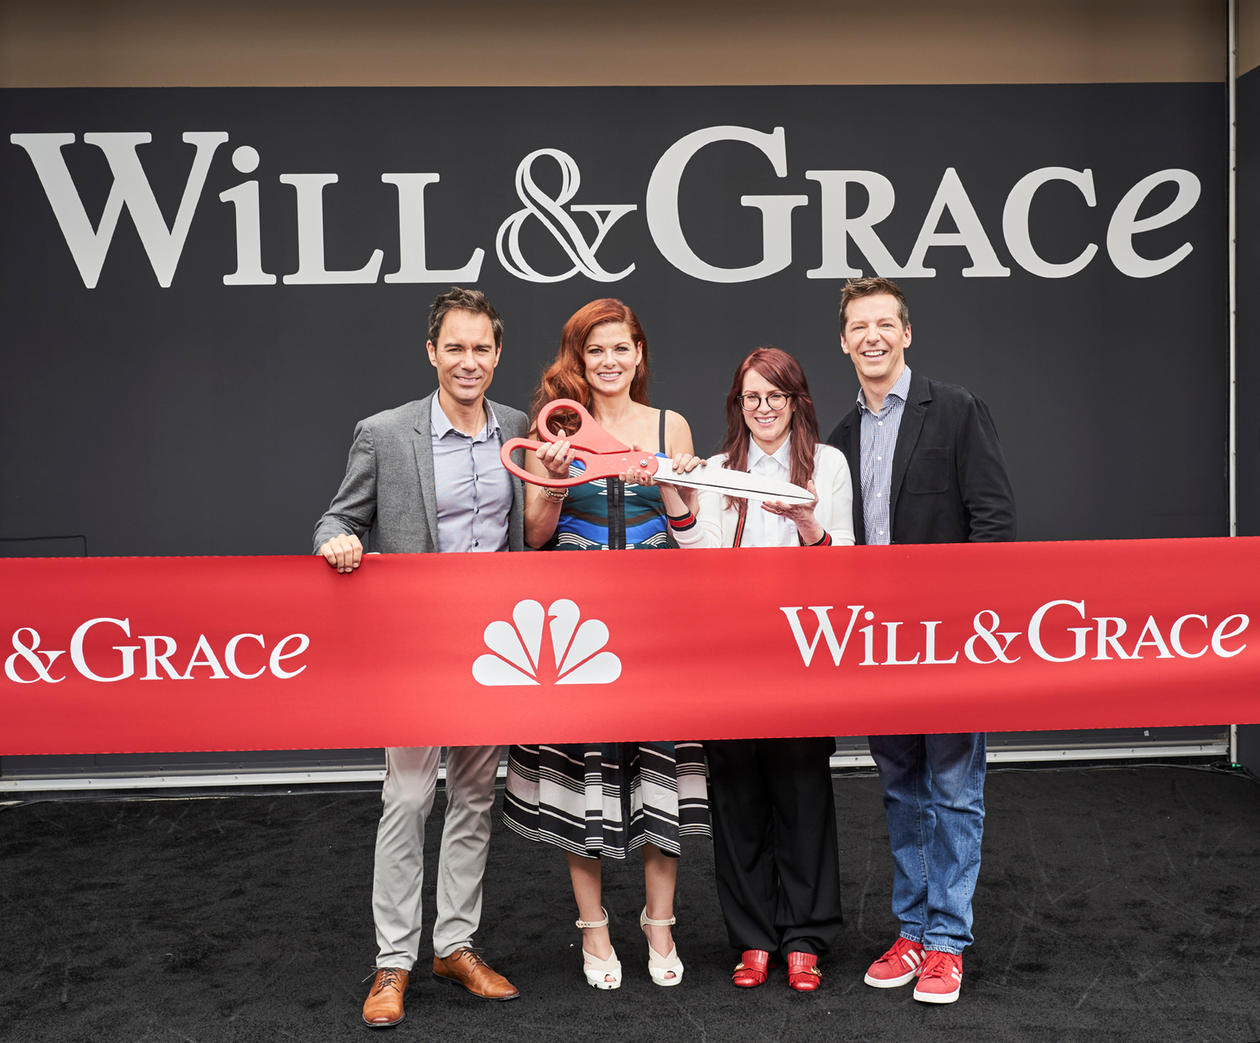 Will and Grace revived